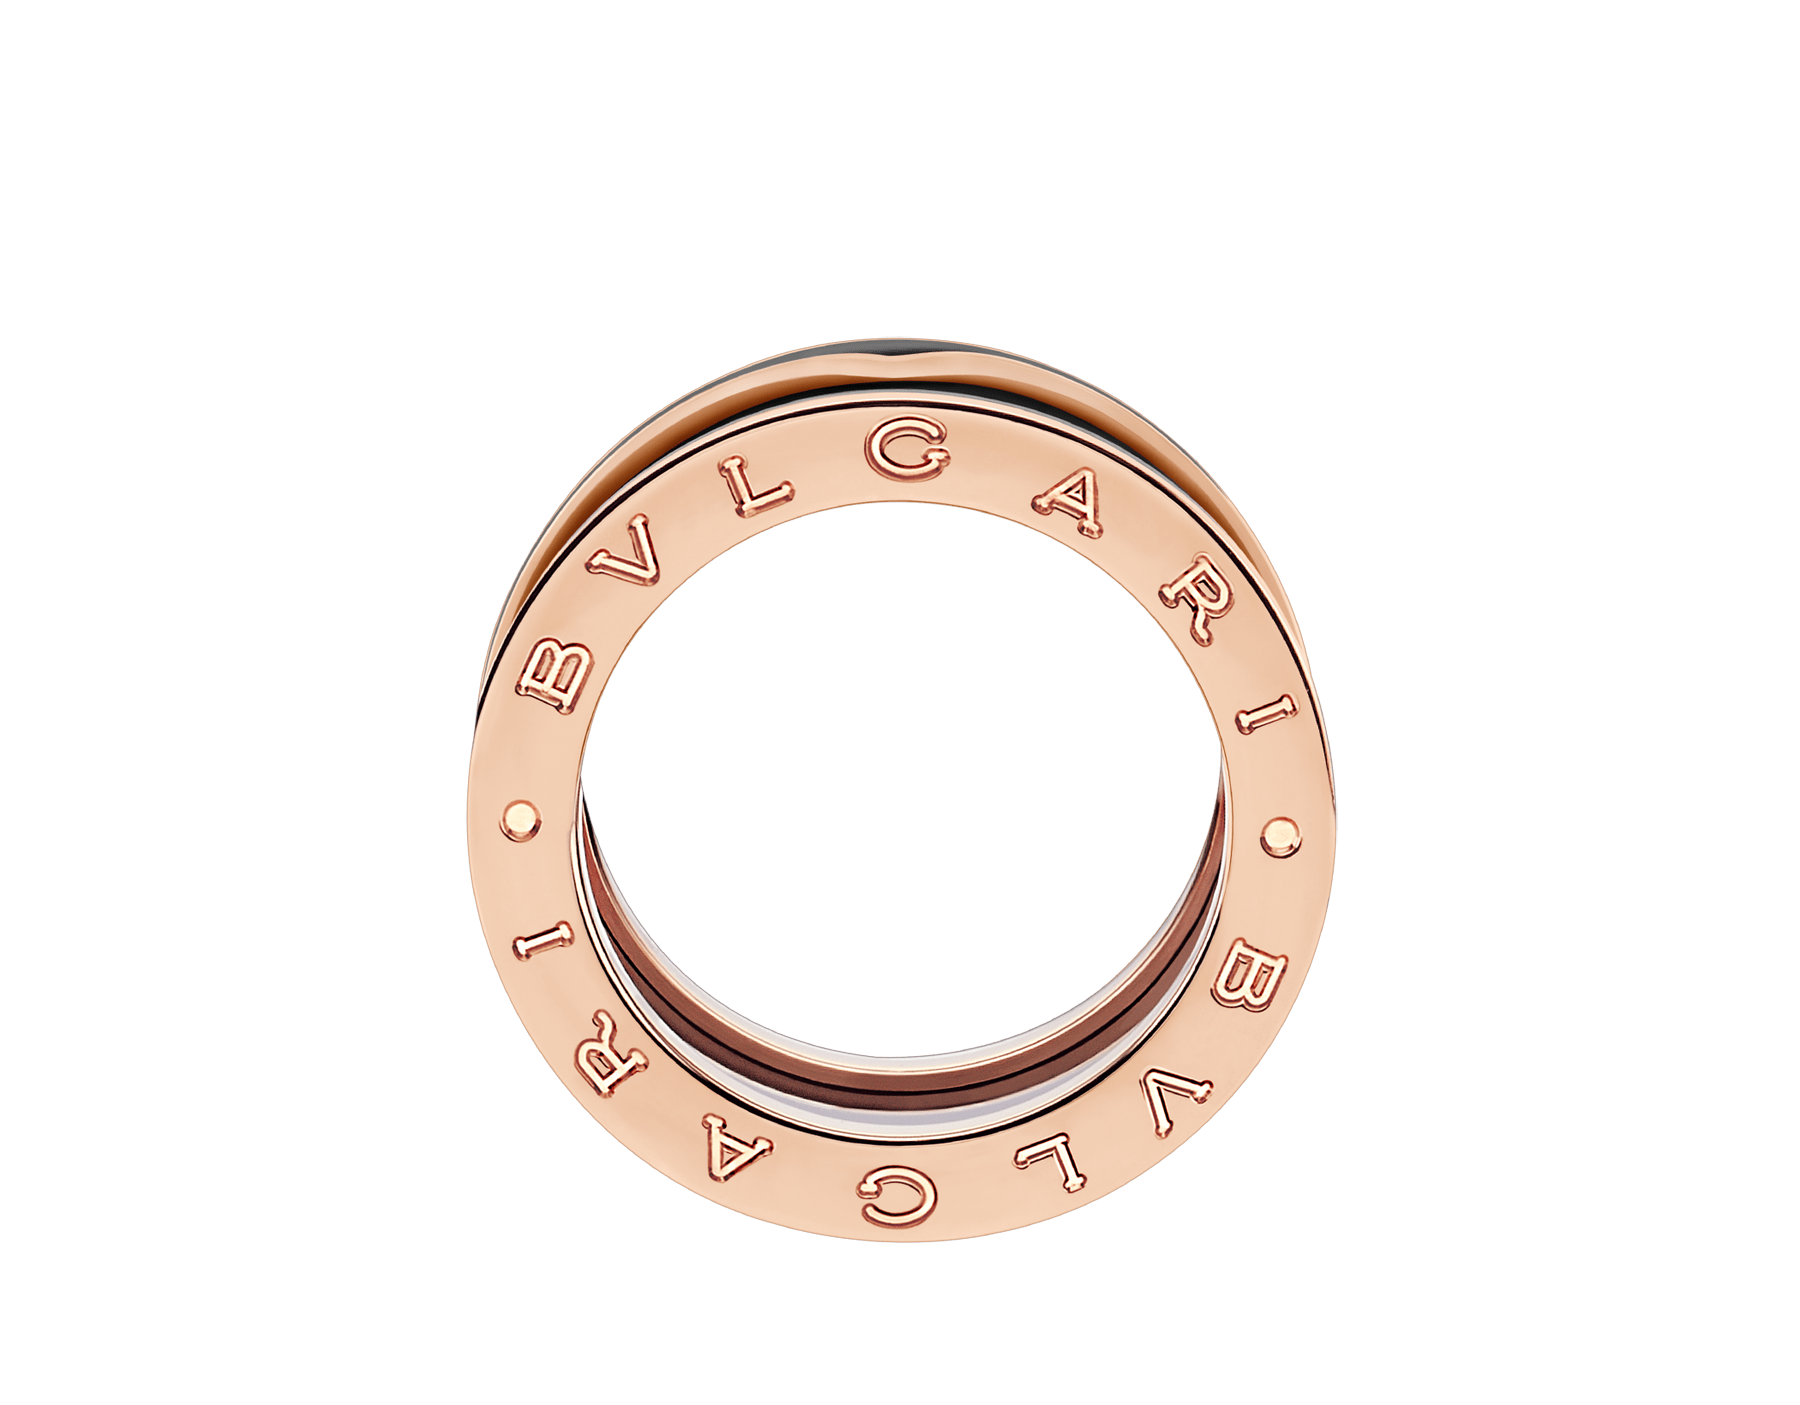 B.zero1 two-band ring in 18 kt rose gold with matte black ceramic AN858853 image 2